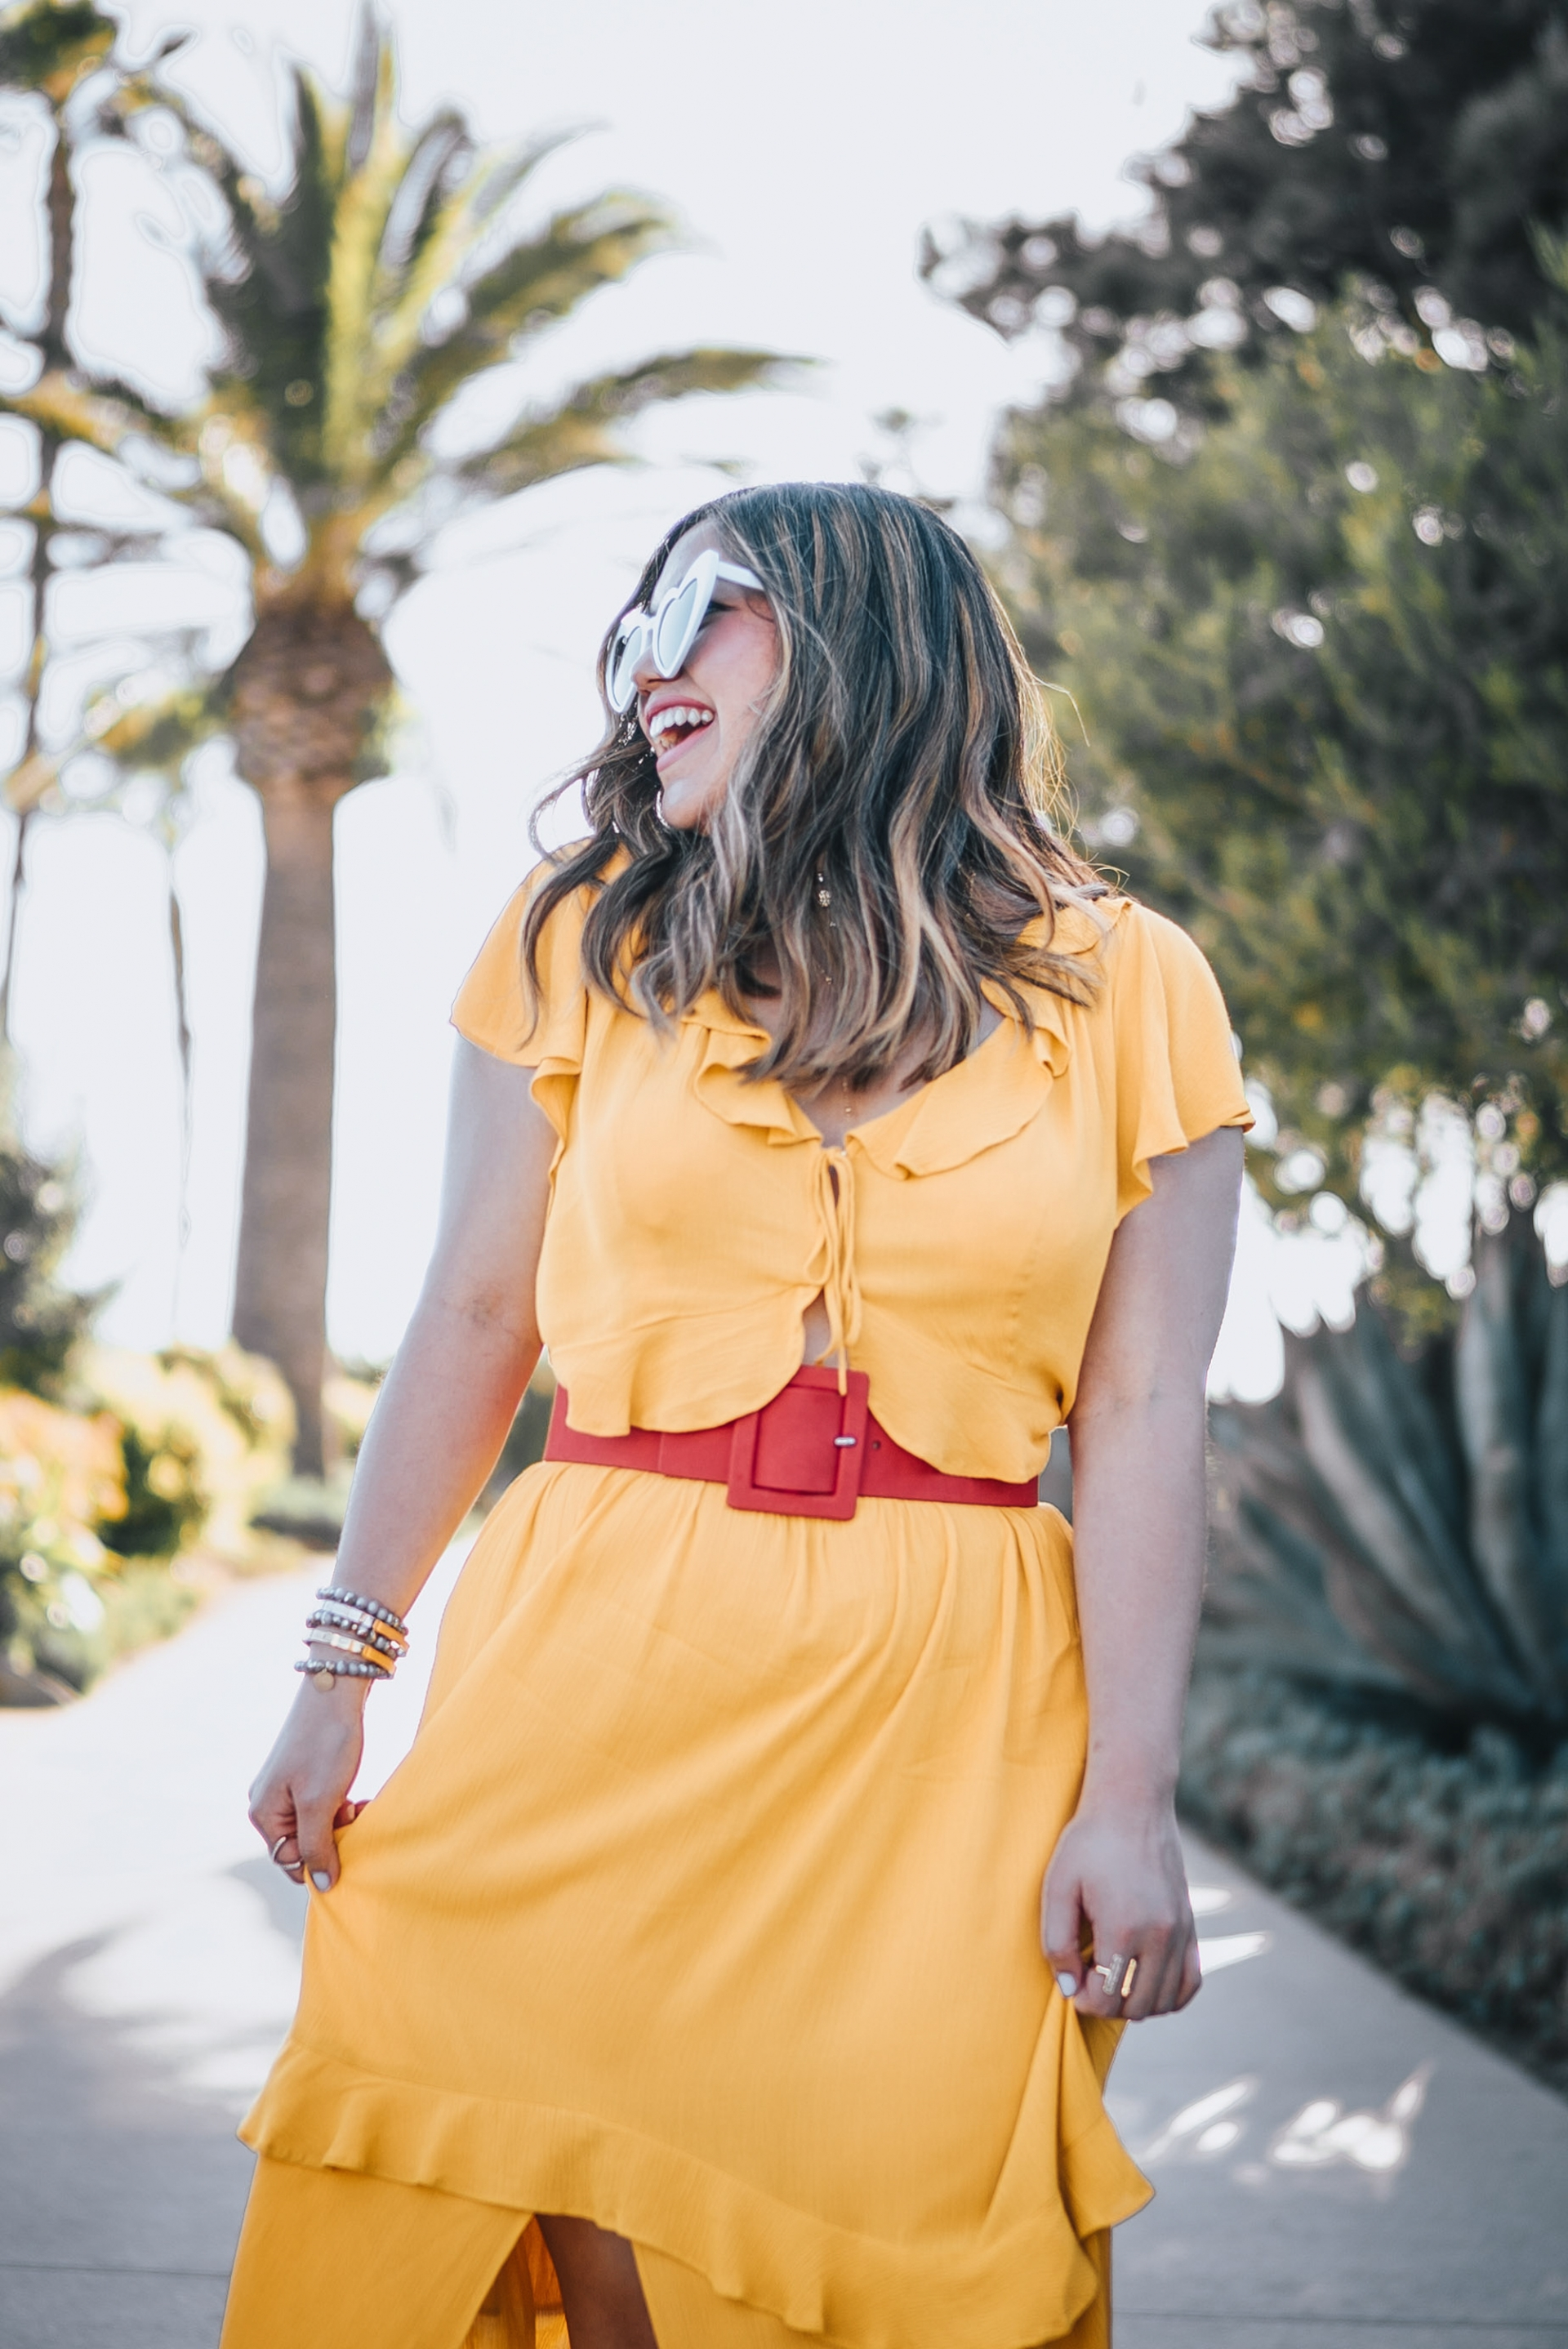 Express Your Rules Mustard Yellow Flutter Sleeve Ruffle Front Cut-out Maxi Dress Red Covered Rectangle Buckle Belt Heart Shape Saint Laurent Dupe Sunglasses